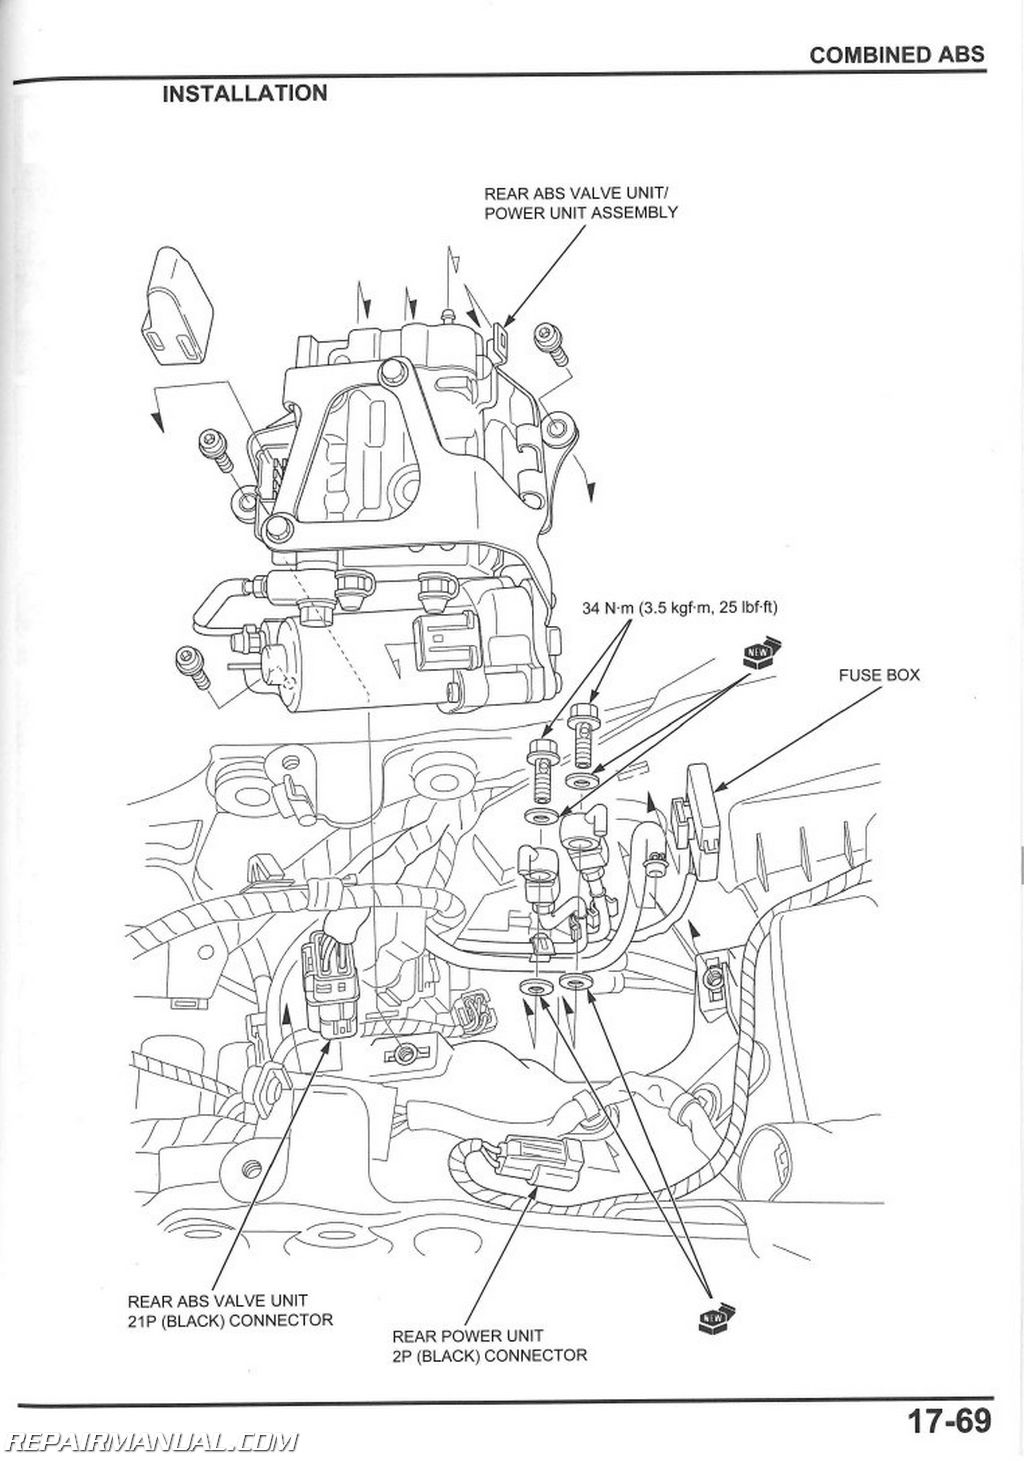 2008 Zx10r Wiring Diagram | Wiring Diagram on friendship bracelet diagrams, series and parallel circuits diagrams, engine diagrams, smart car diagrams, motor diagrams, switch diagrams, lighting diagrams, electronic circuit diagrams, sincgars radio configurations diagrams, hvac diagrams, transformer diagrams, battery diagrams, honda motorcycle repair diagrams, pinout diagrams, internet of things diagrams, gmc fuse box diagrams, snatch block diagrams, electrical diagrams, troubleshooting diagrams, led circuit diagrams,